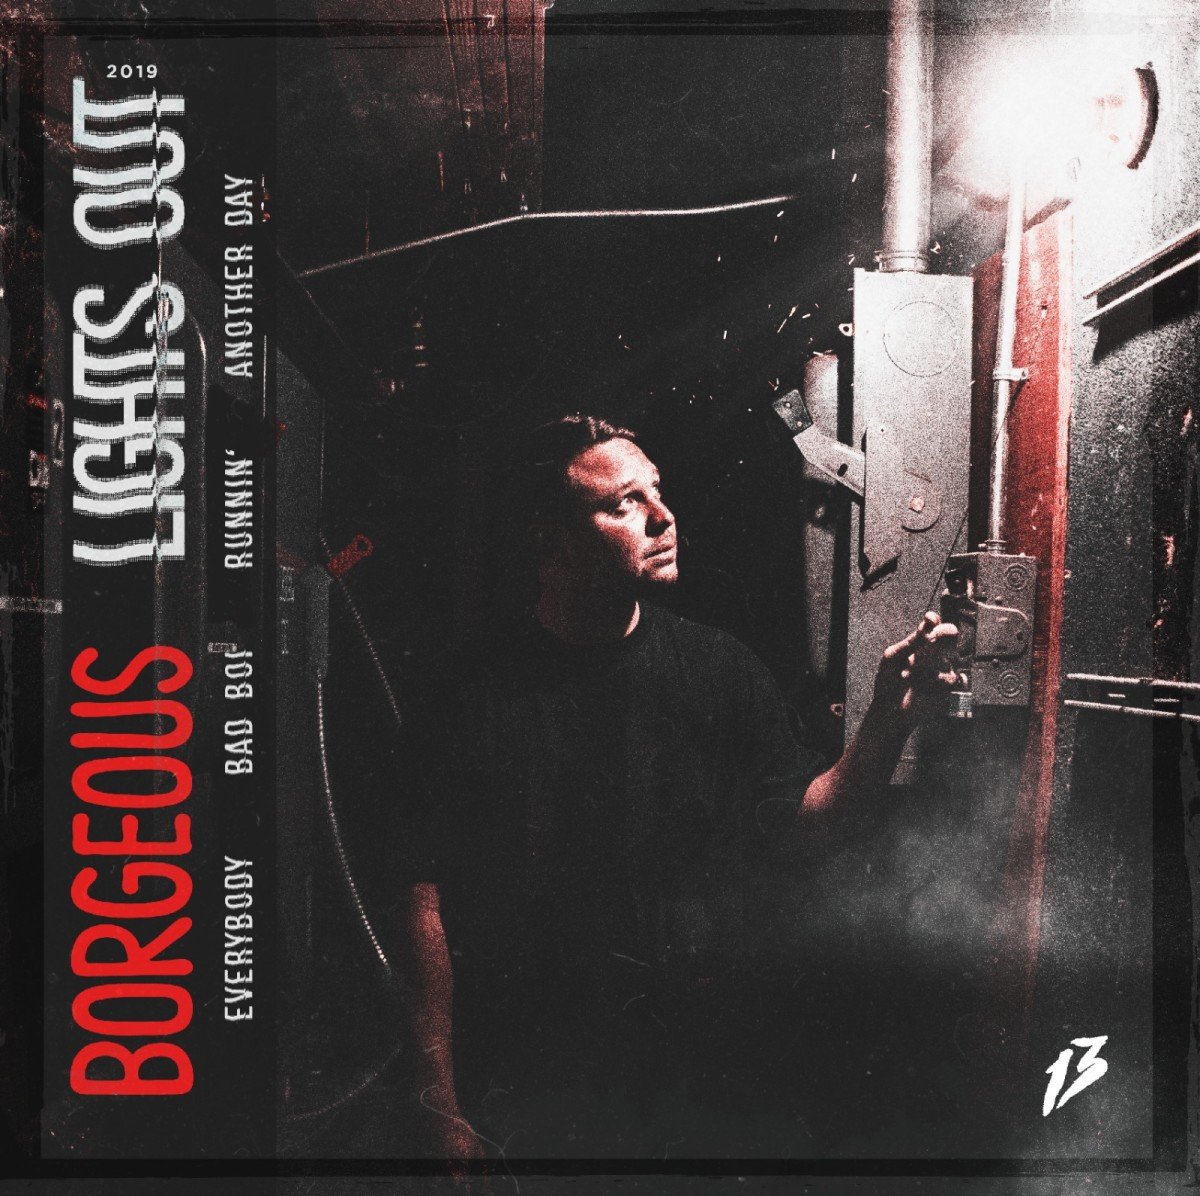 Borgeous - Lights Out EP (Album Artwork / Cover Art)